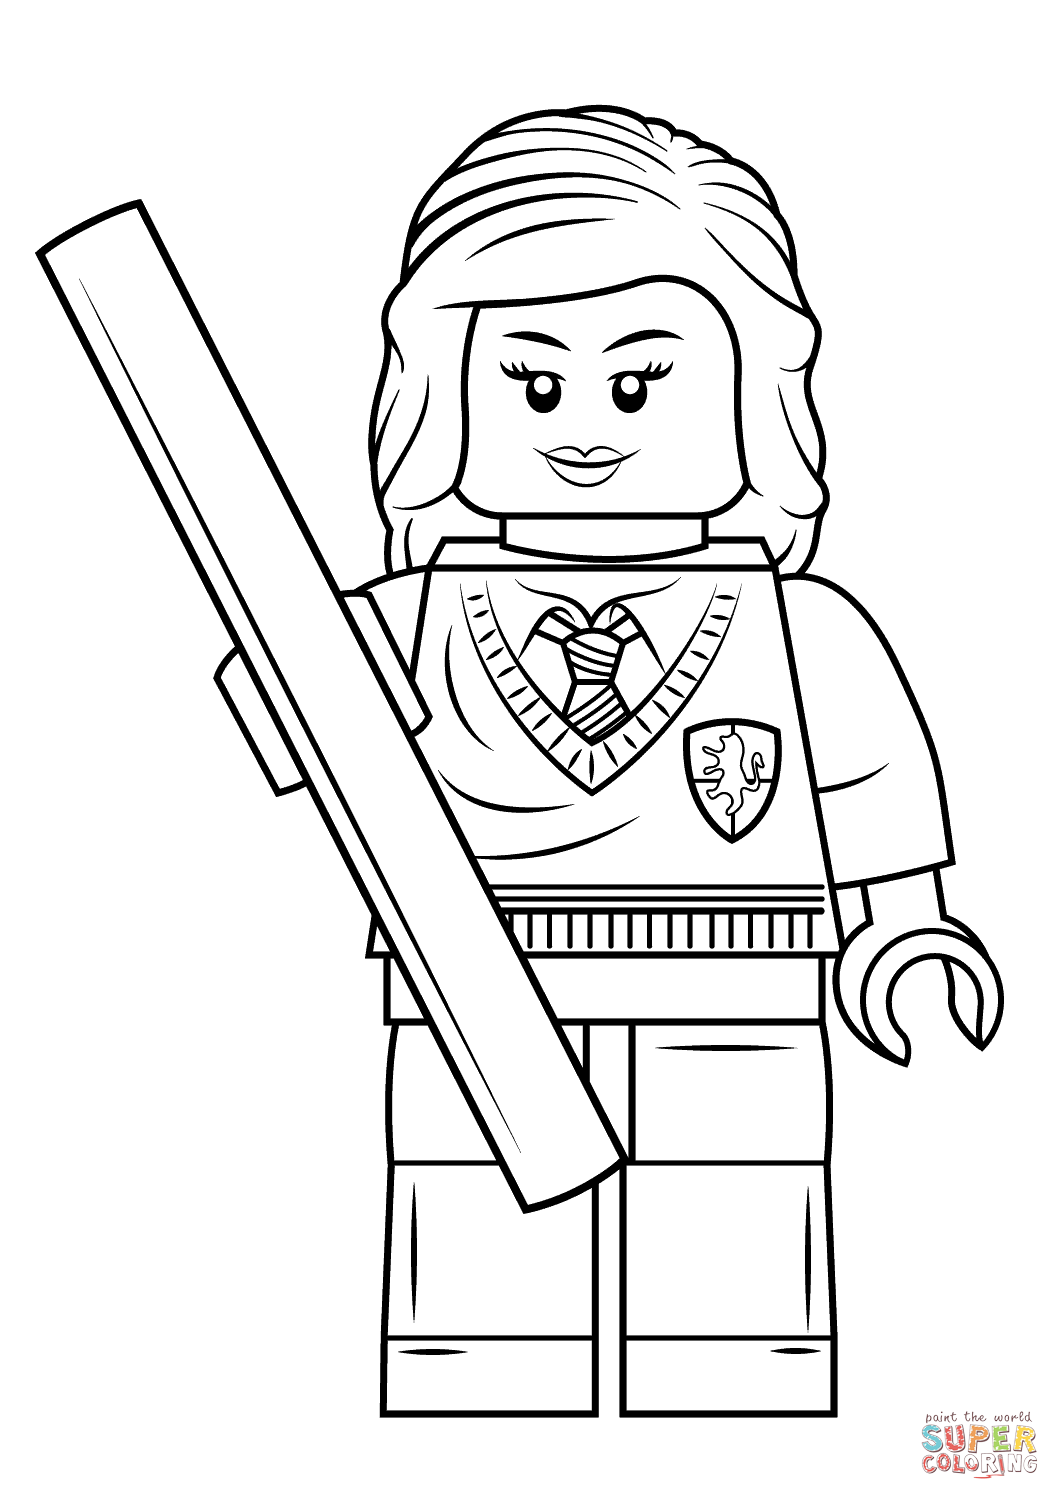 Pin By C2ee On Sketchbook Ideas Harry Potter Coloring Pages Lego Coloring Pages Harry Potter Colors